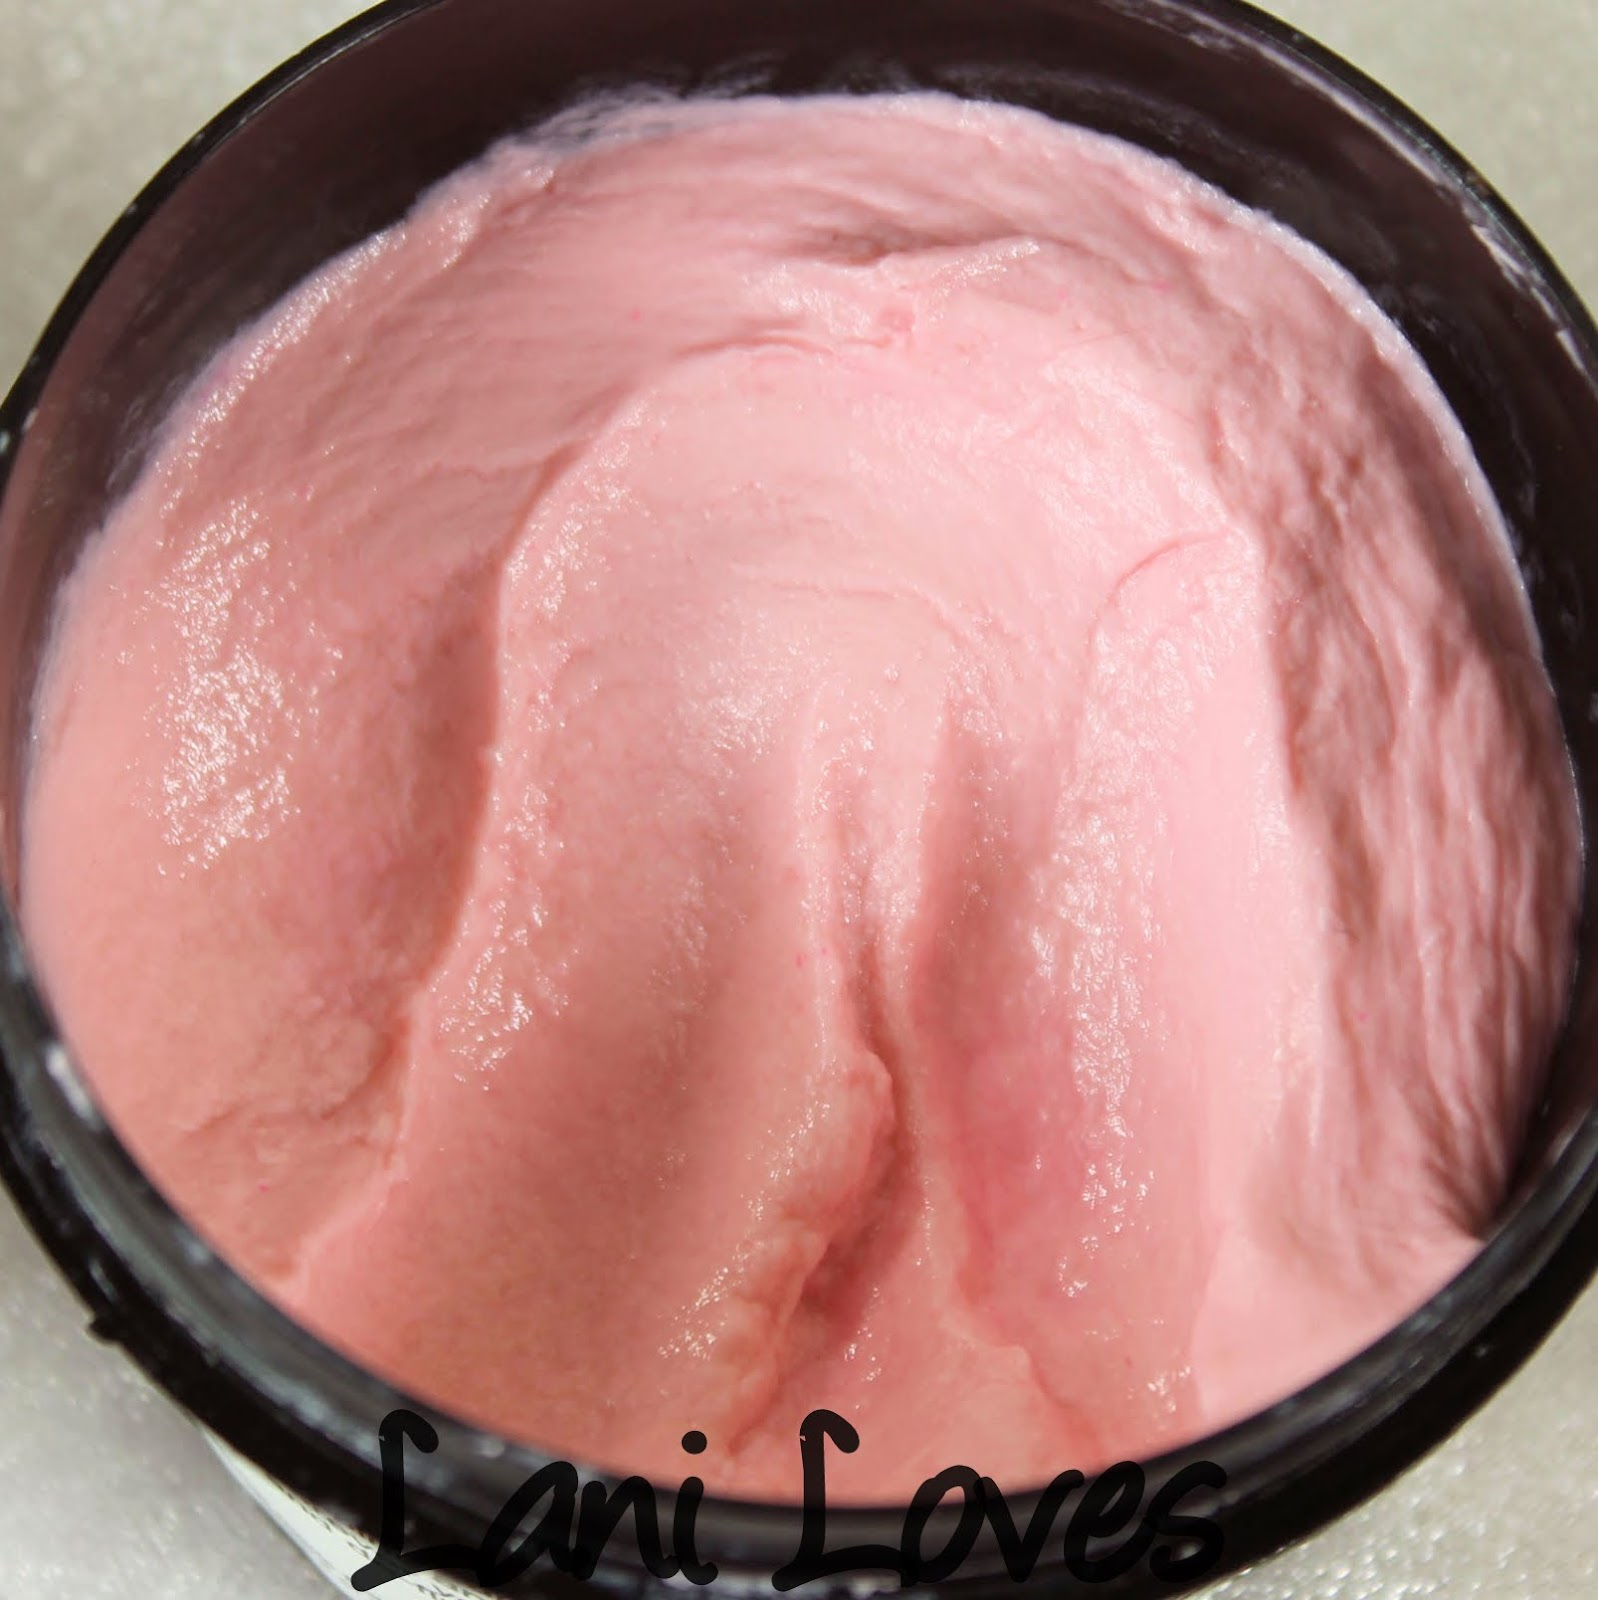 LUSH D'Fluff Strawberry Shaving Soap Review & Giveaway!